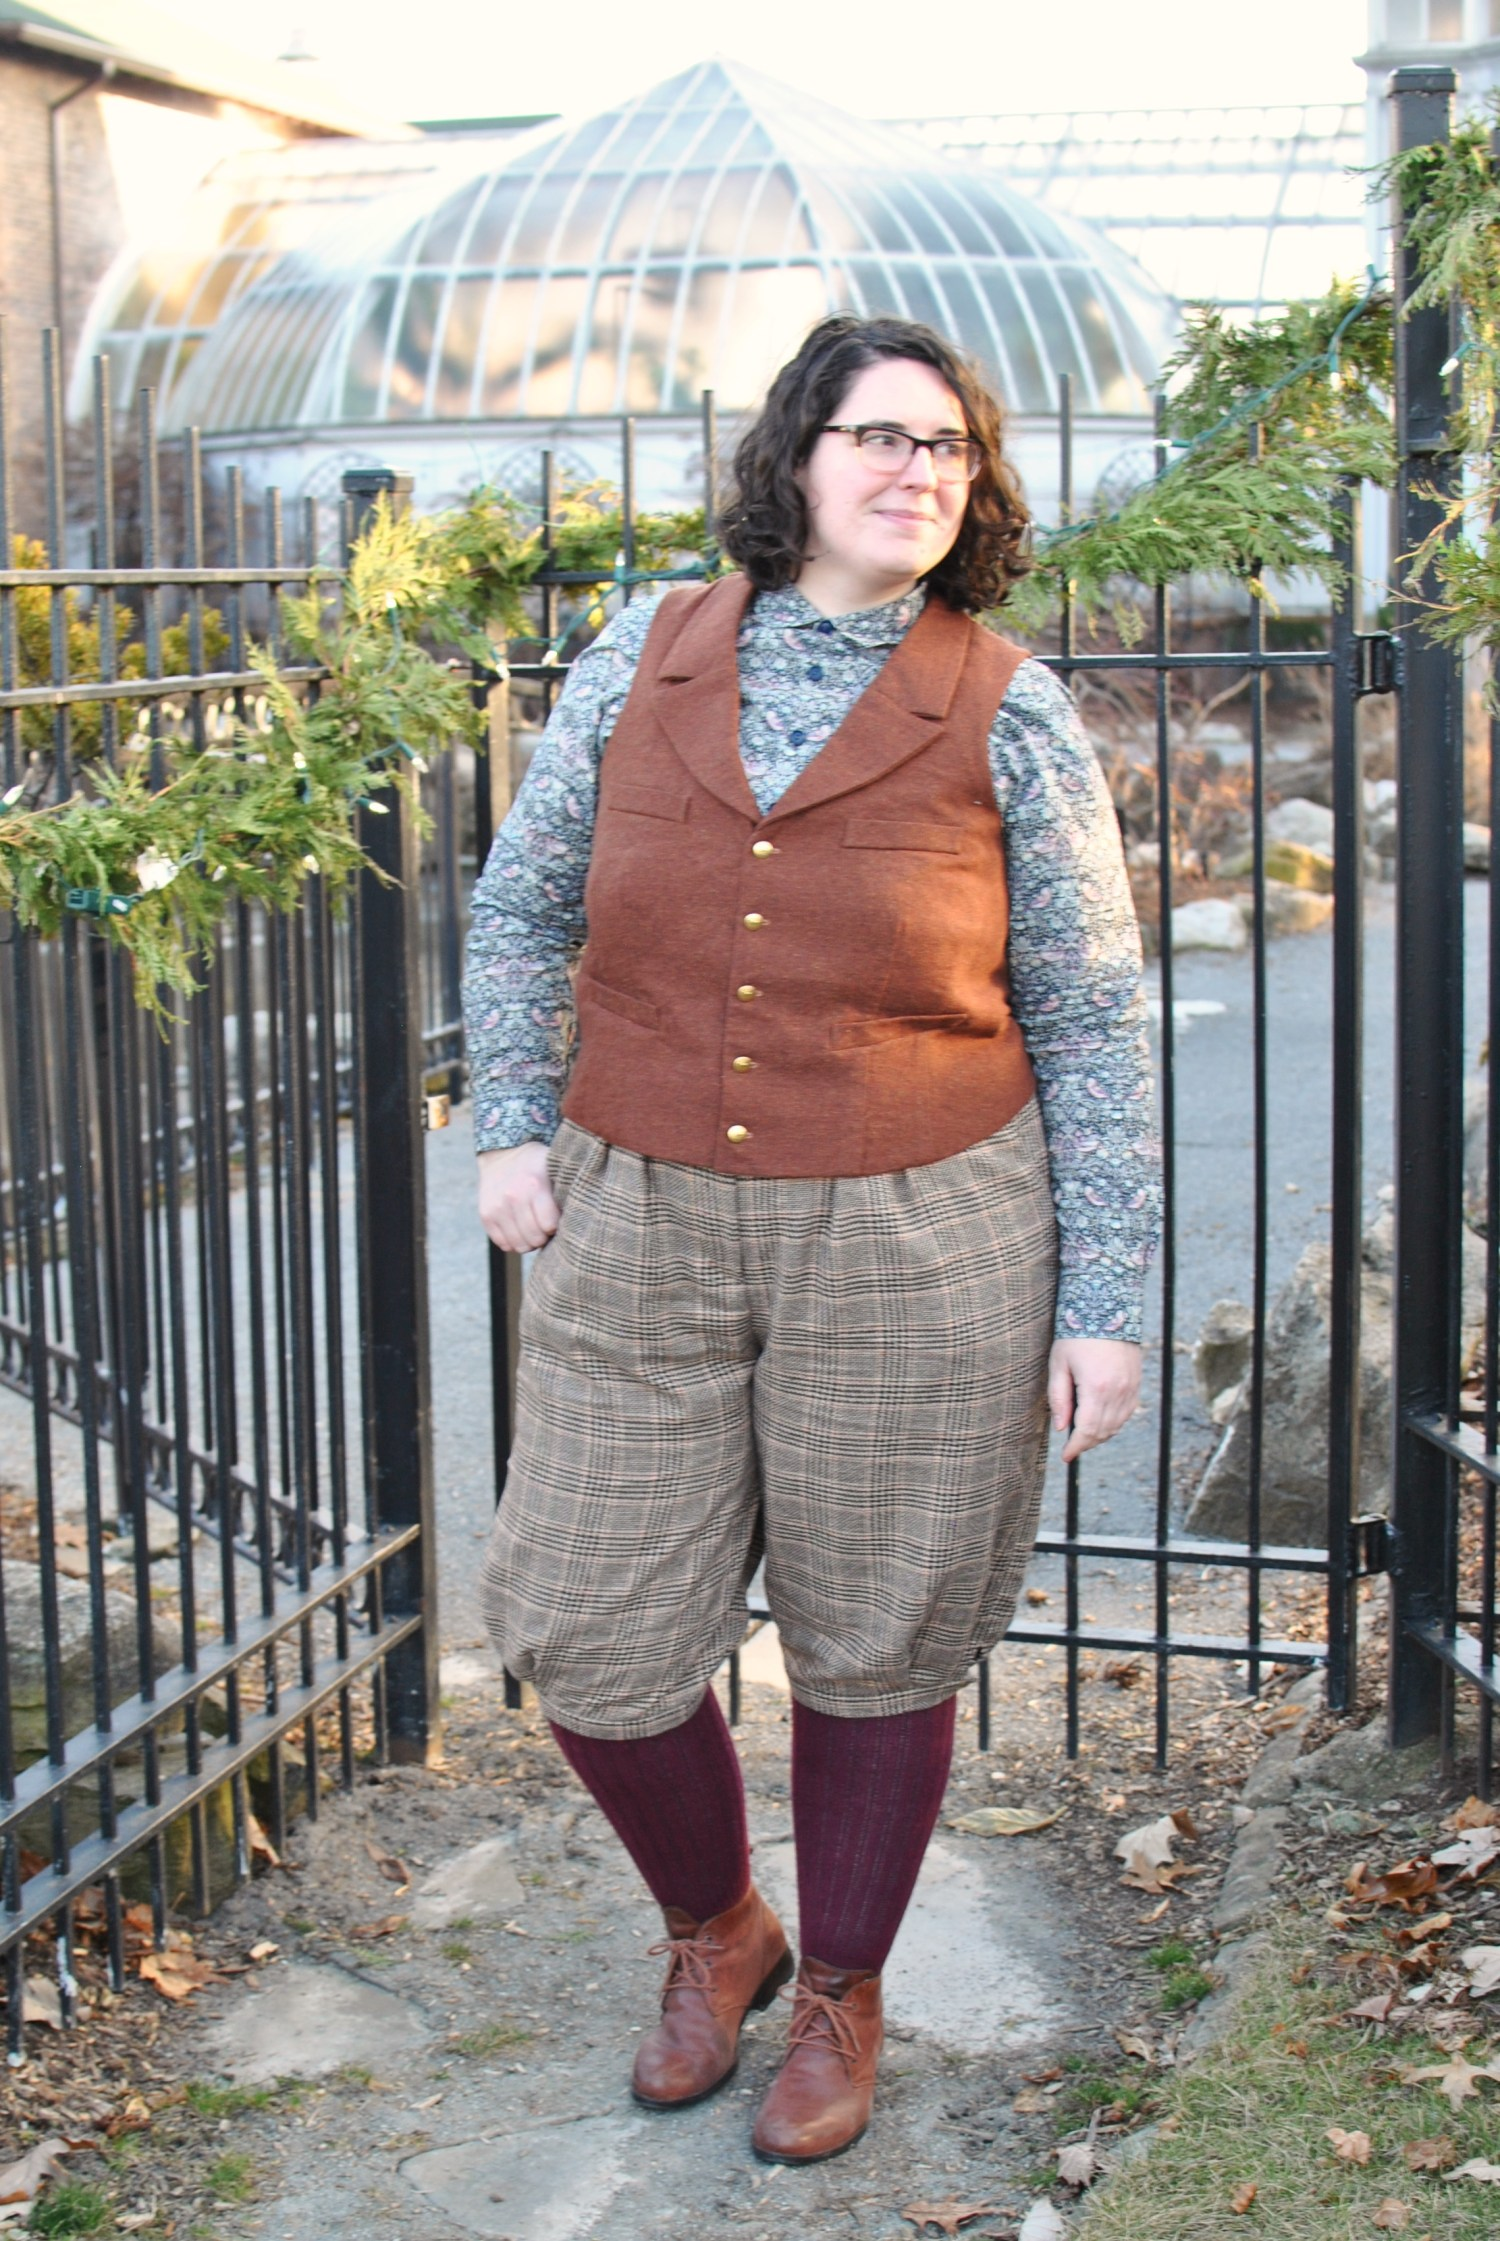 Shannon standing in front of an iron gate, wearing tan knickerbockers, a rust colored vest, a floral shirt, maroon socks, and brown boots.